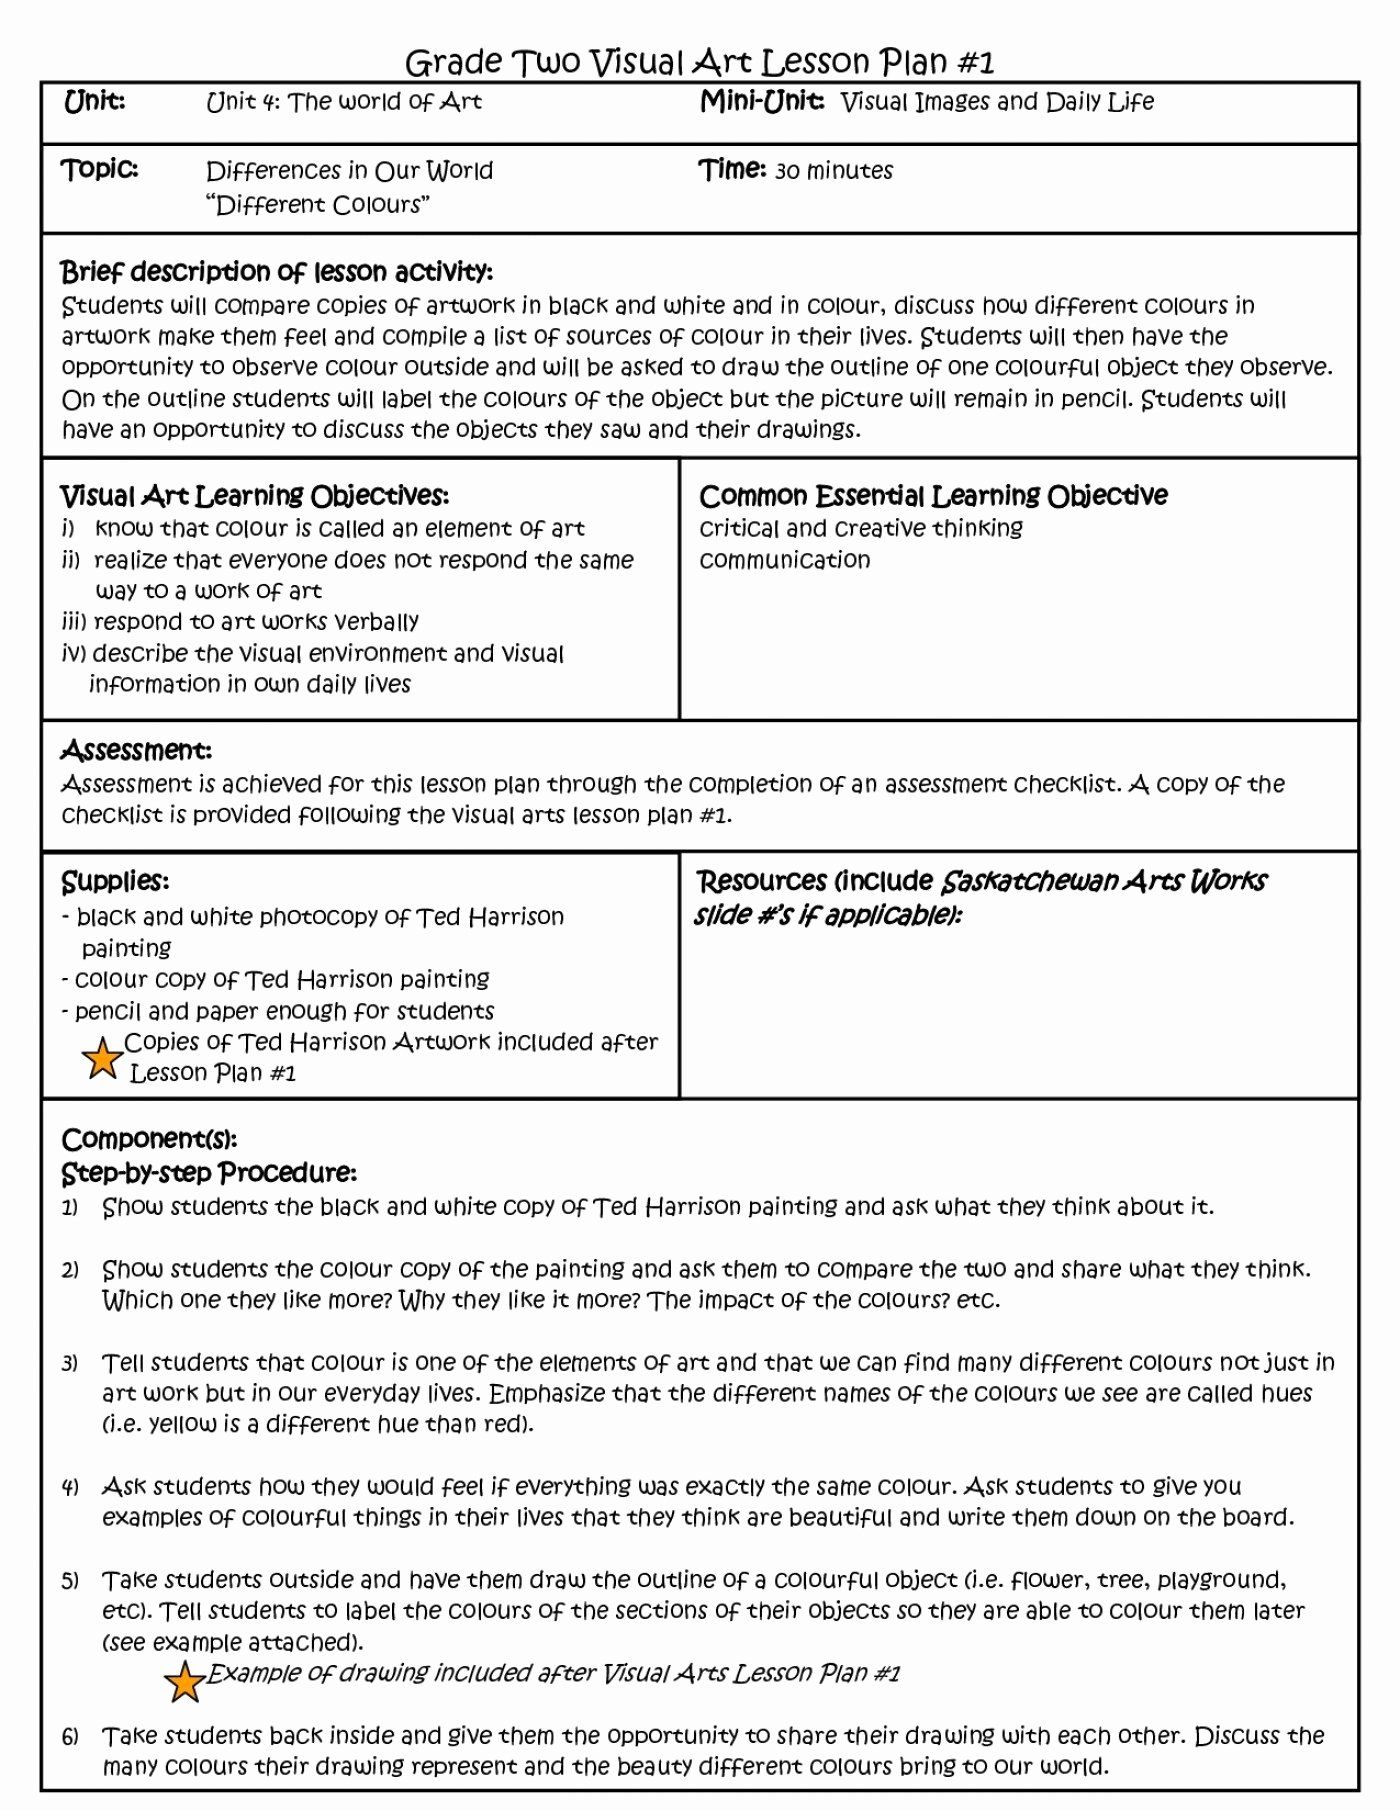 5 Step Lesson Plan Template Luxury 020 Mini Unit Lesson Plan Template Writers Format Is Plans Visual Art Lessons Lesson Plan Templates Art Lesson Plans